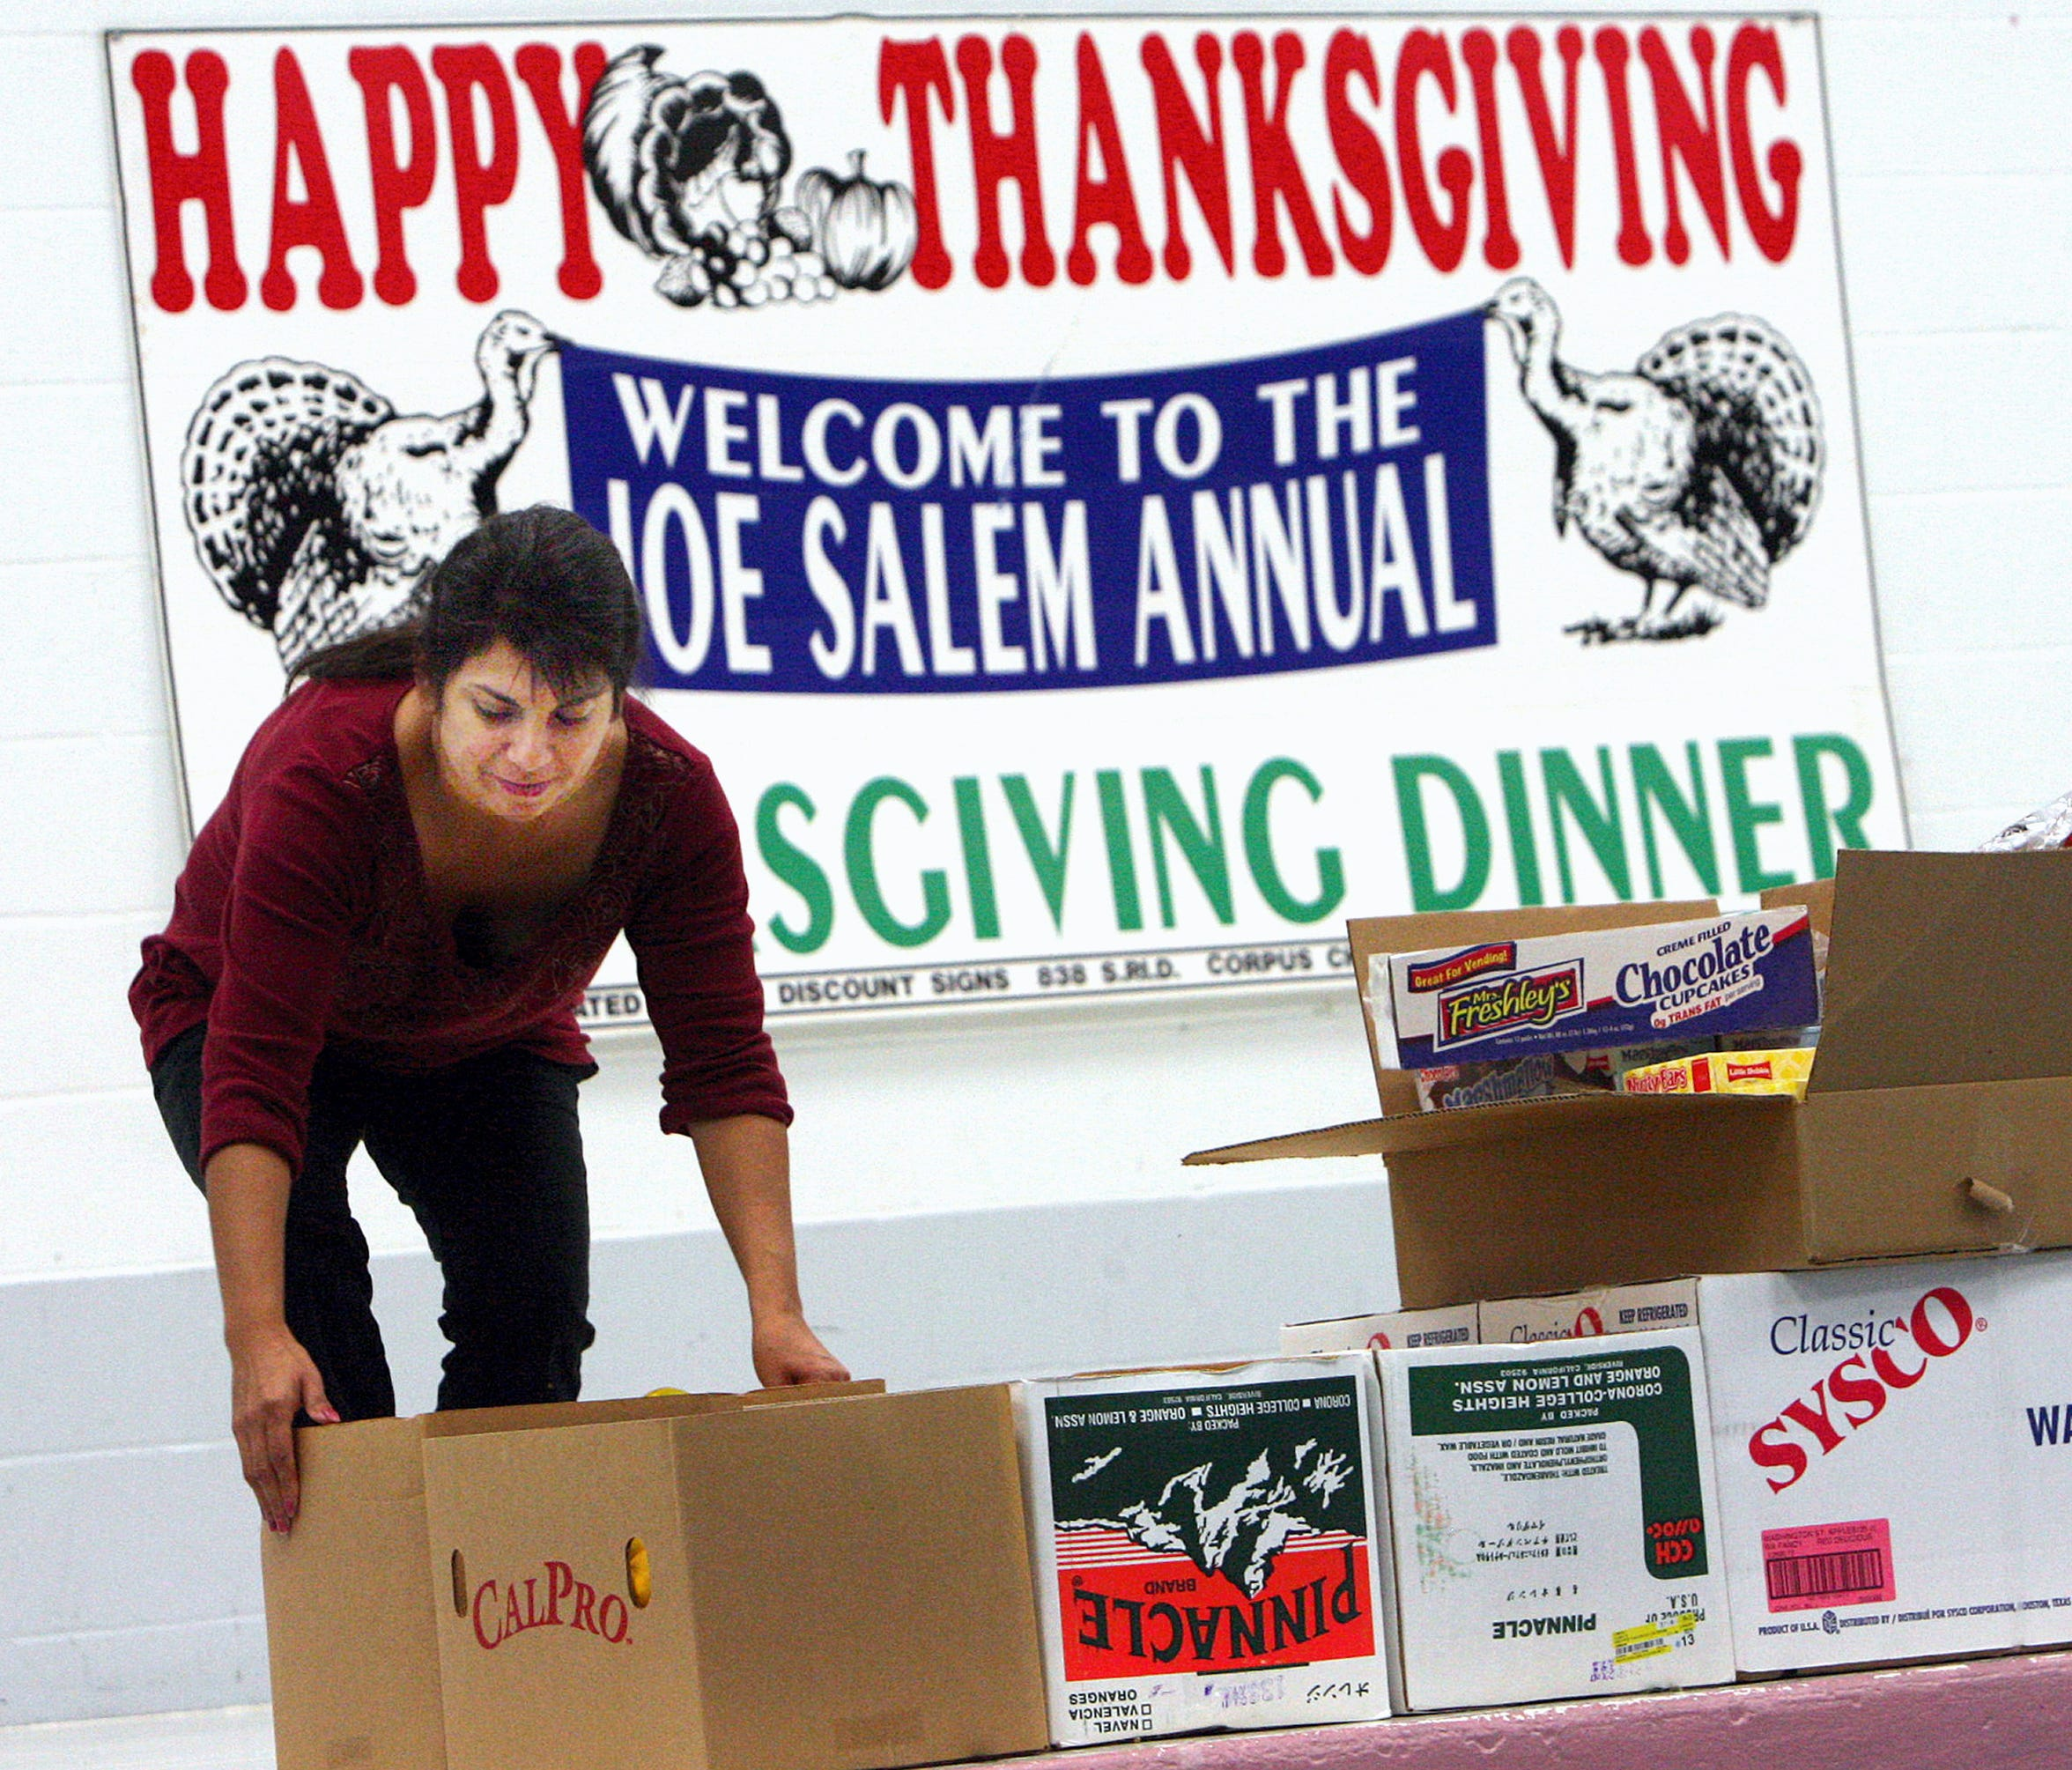 Gloria Martinez helps set up at the annual Joe Salem Thanksgiving Dinner. The annual community event celebrates its 75th anniversary on Thanksgiving Day.